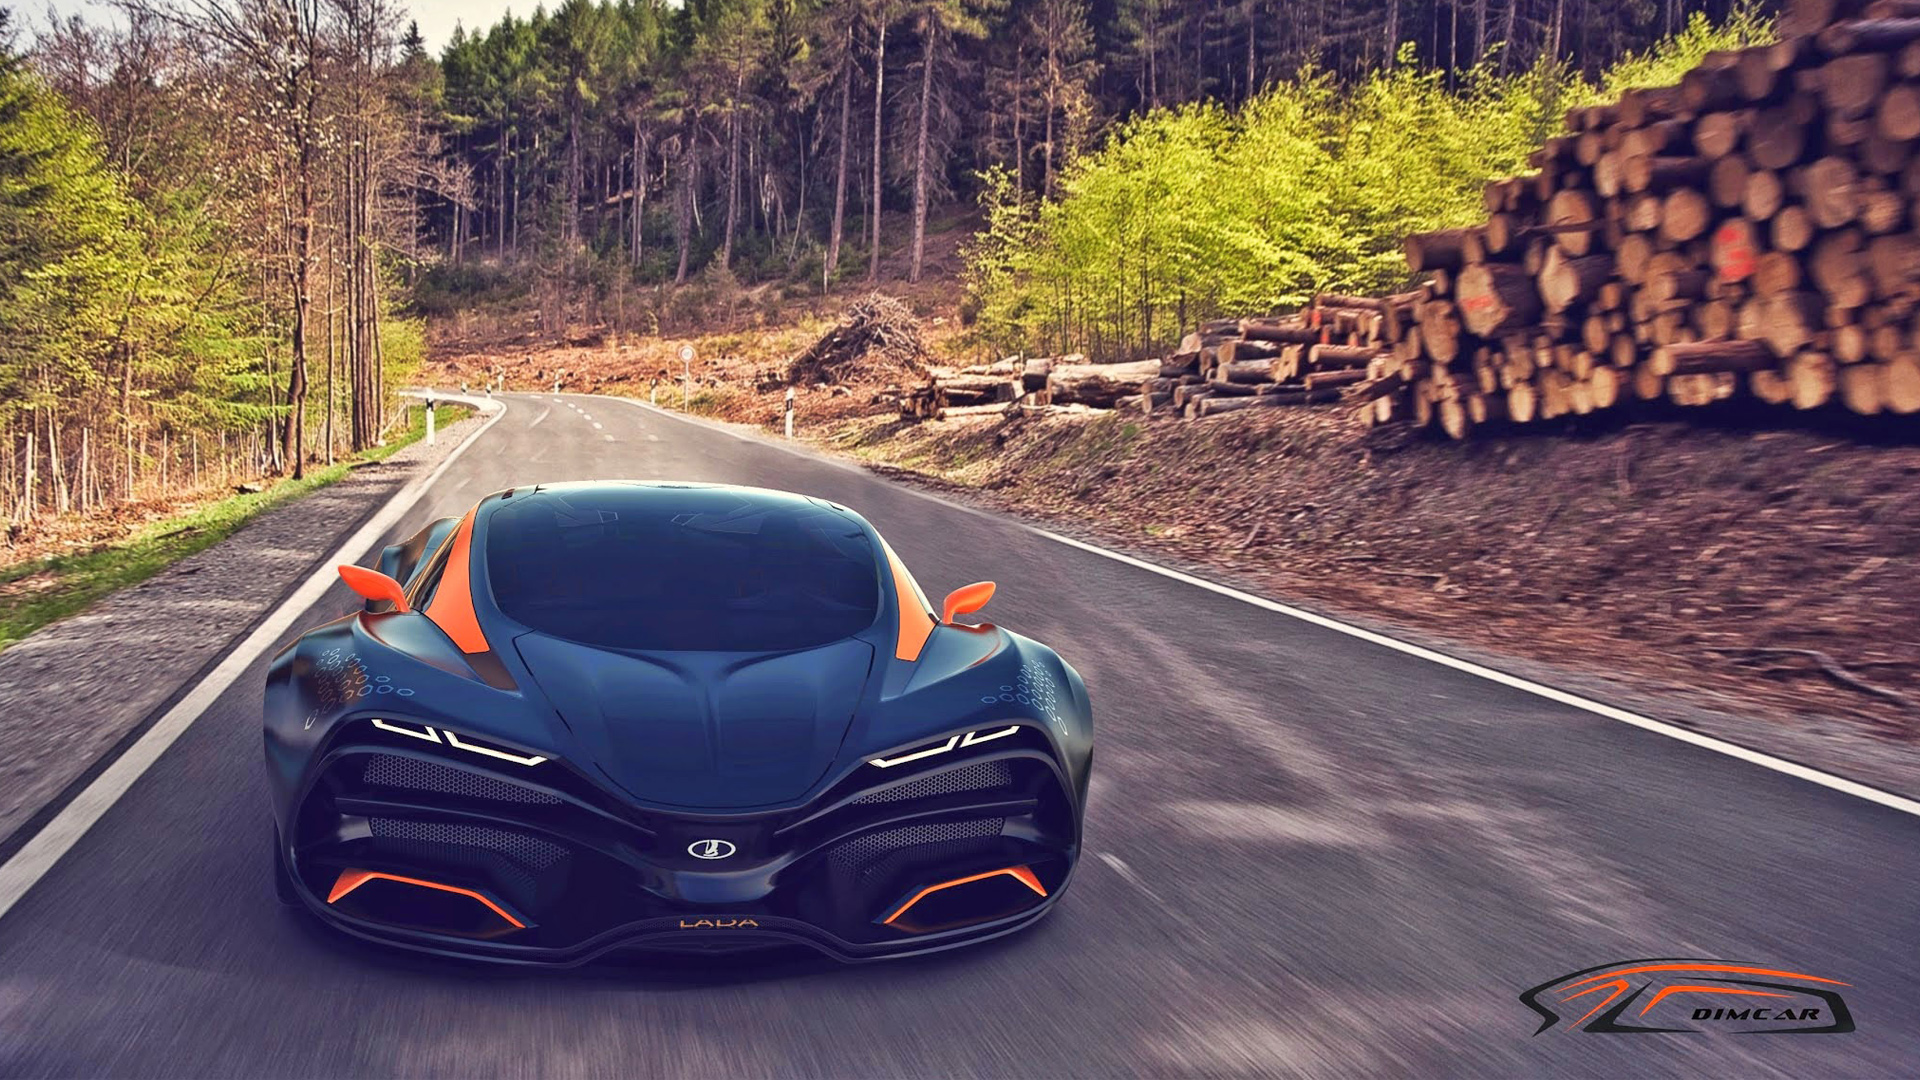 Lada Raven Supercar Concept Wallpaper Hd Car Wallpapers